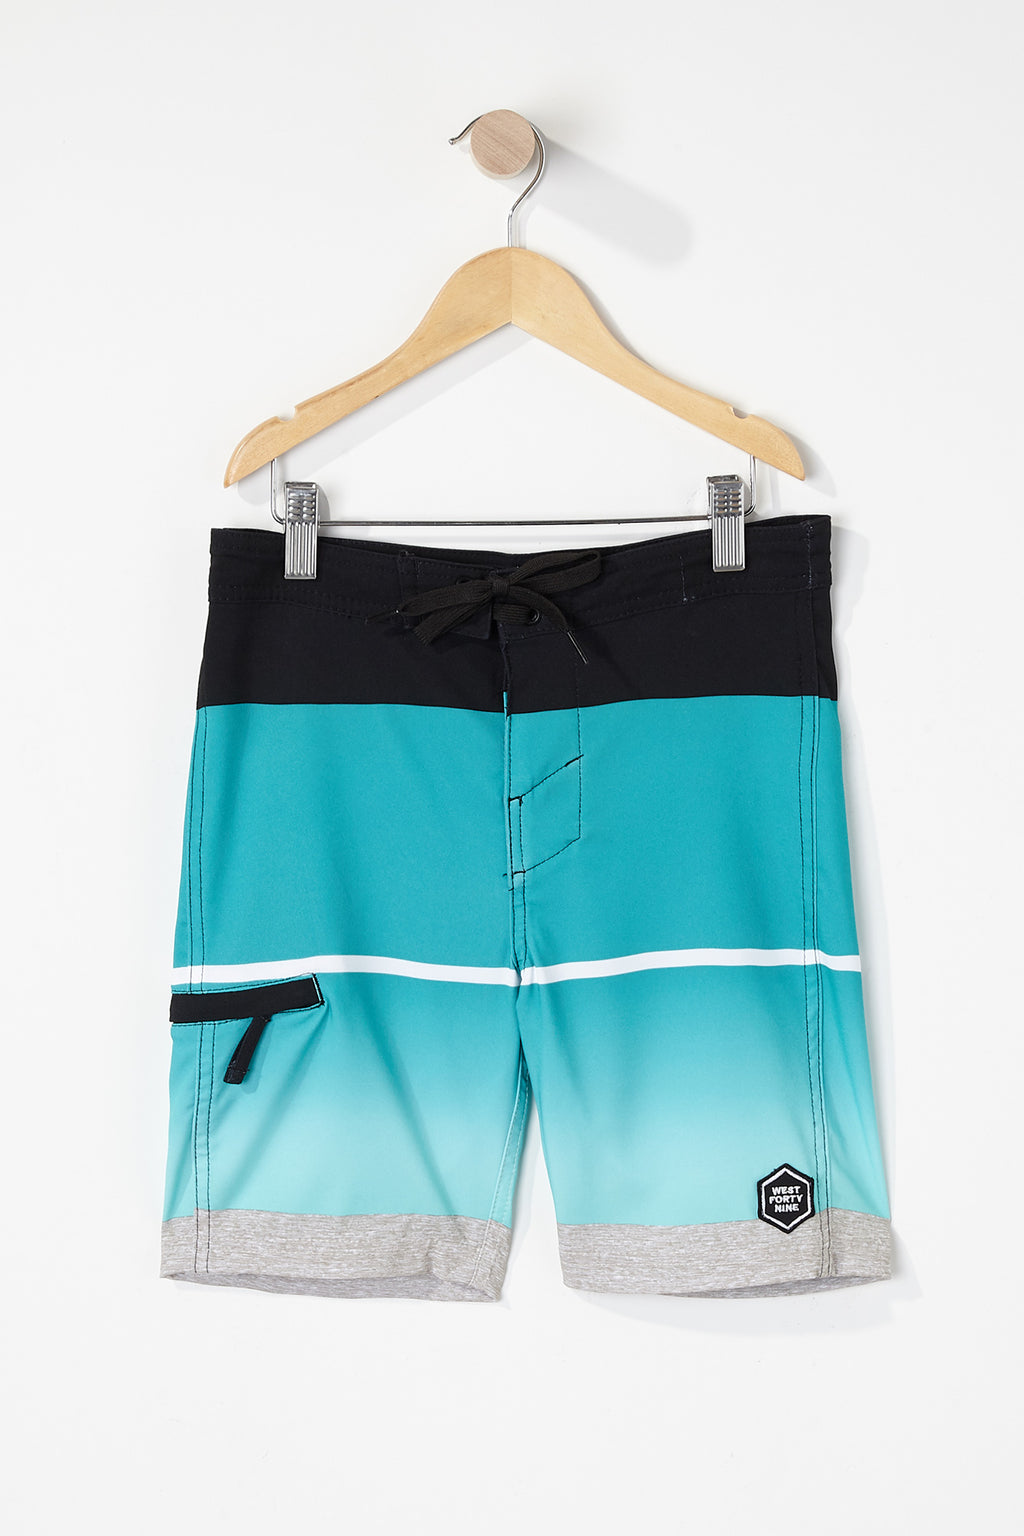 West49 Boys Striped Board Shorts